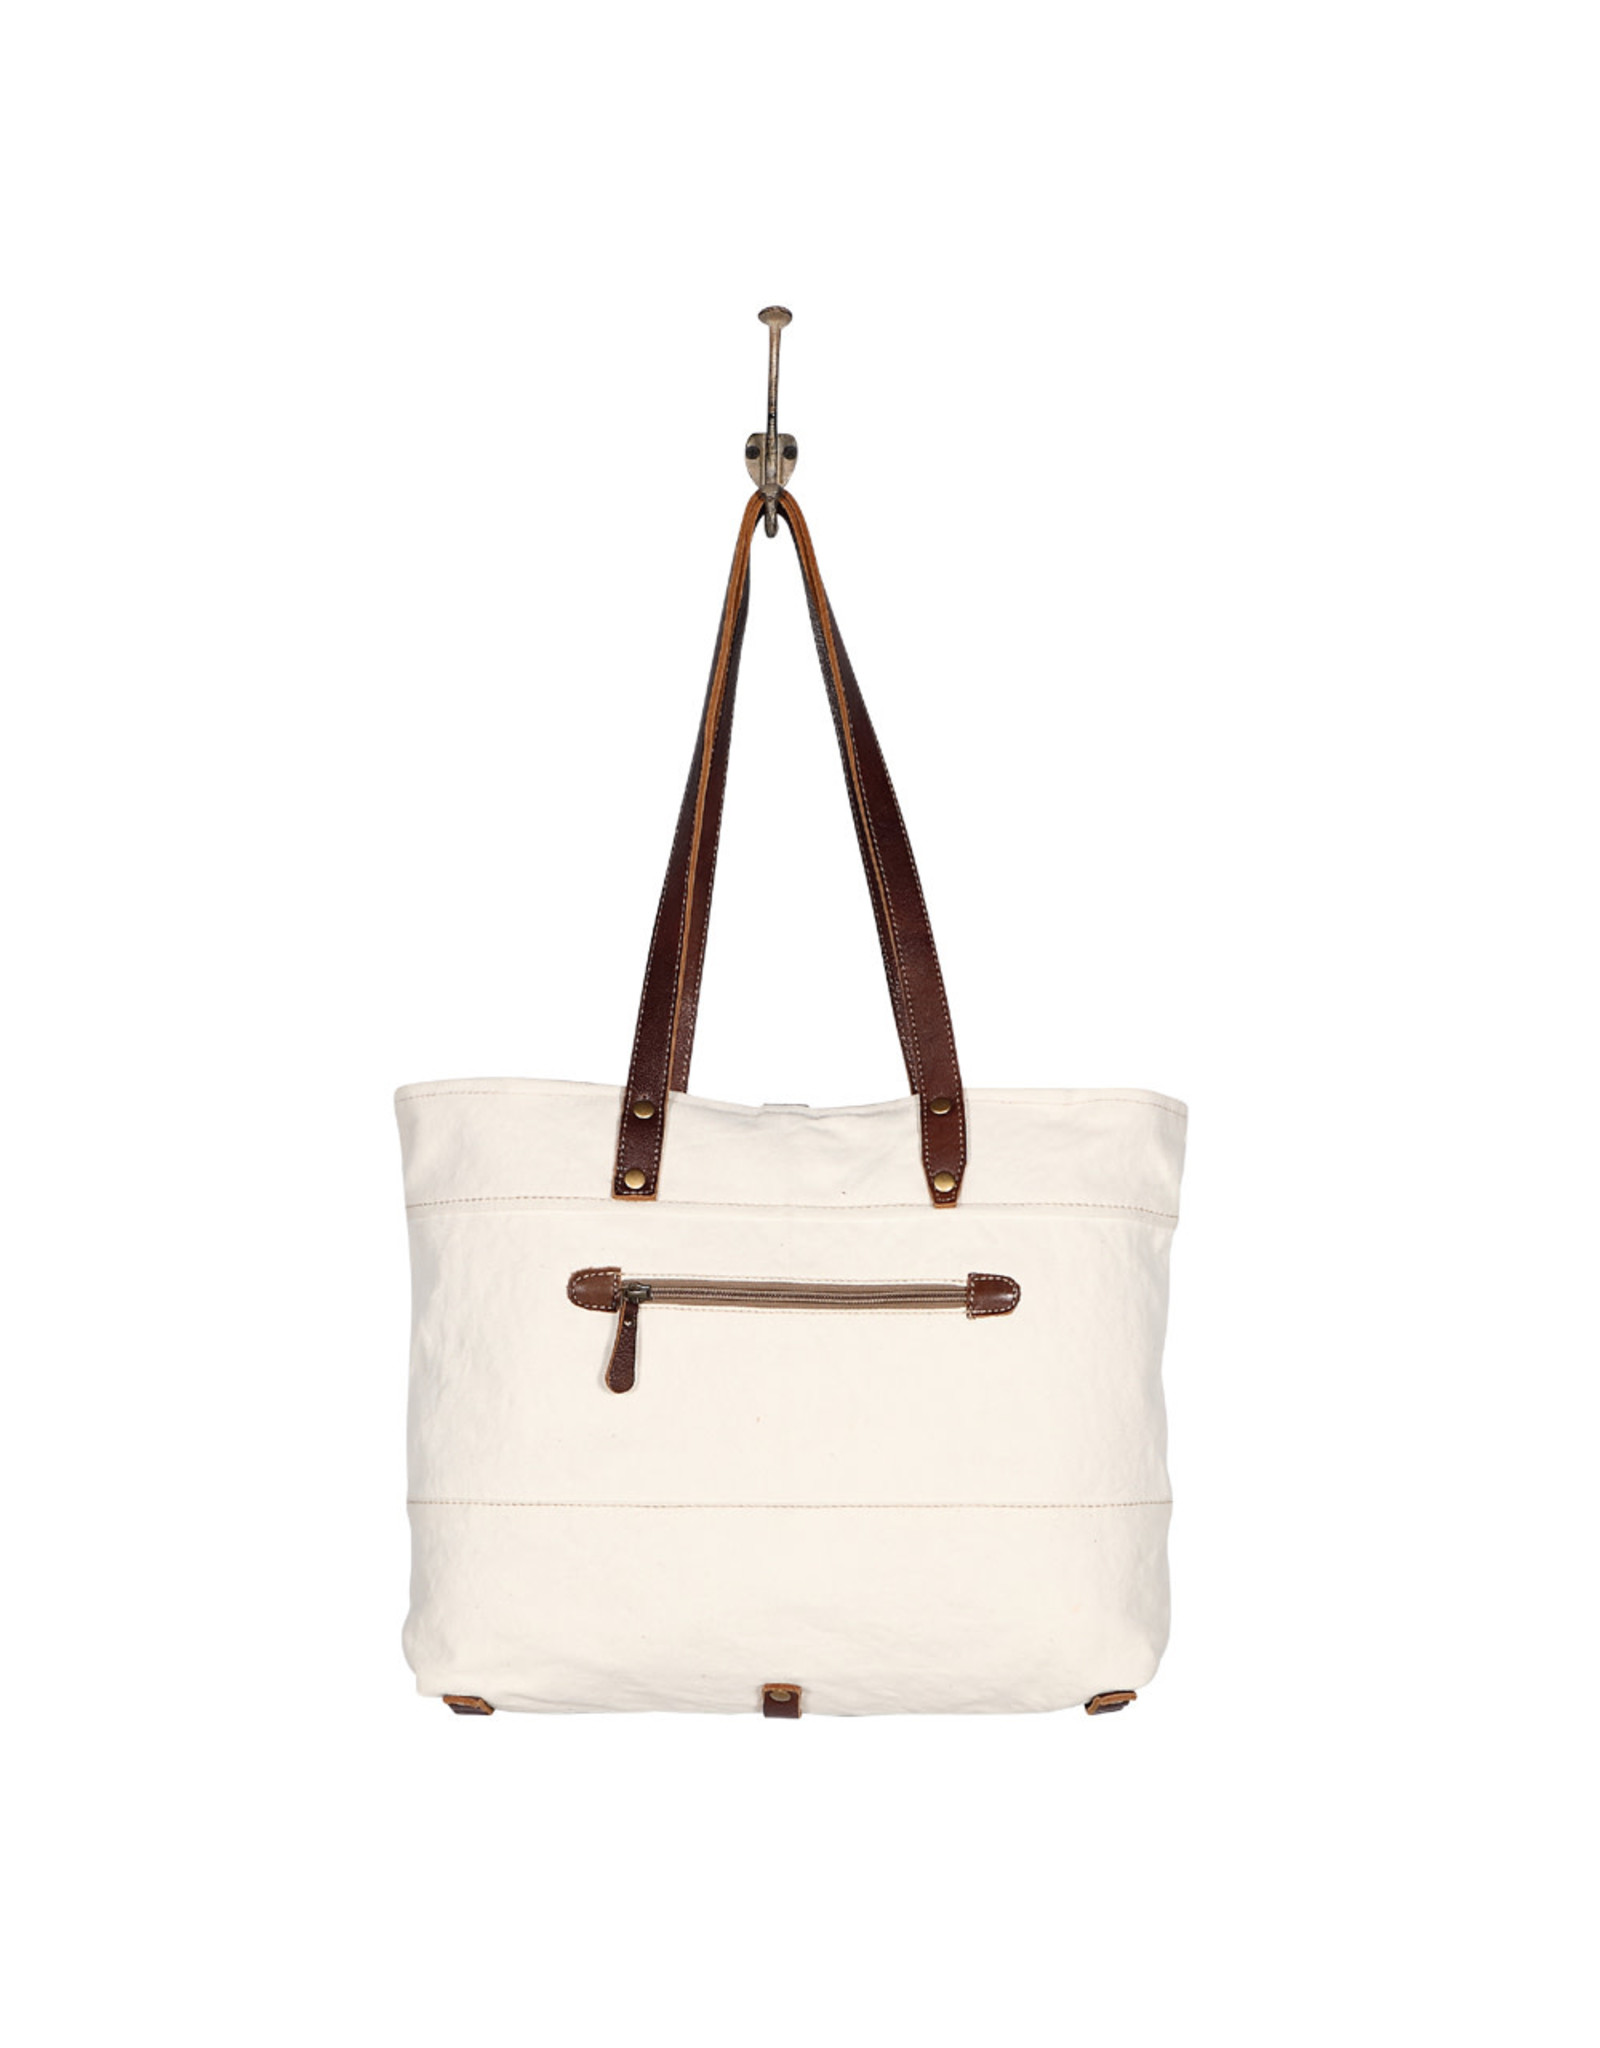 Myra Bags S-1994 Pure Bliss Tote